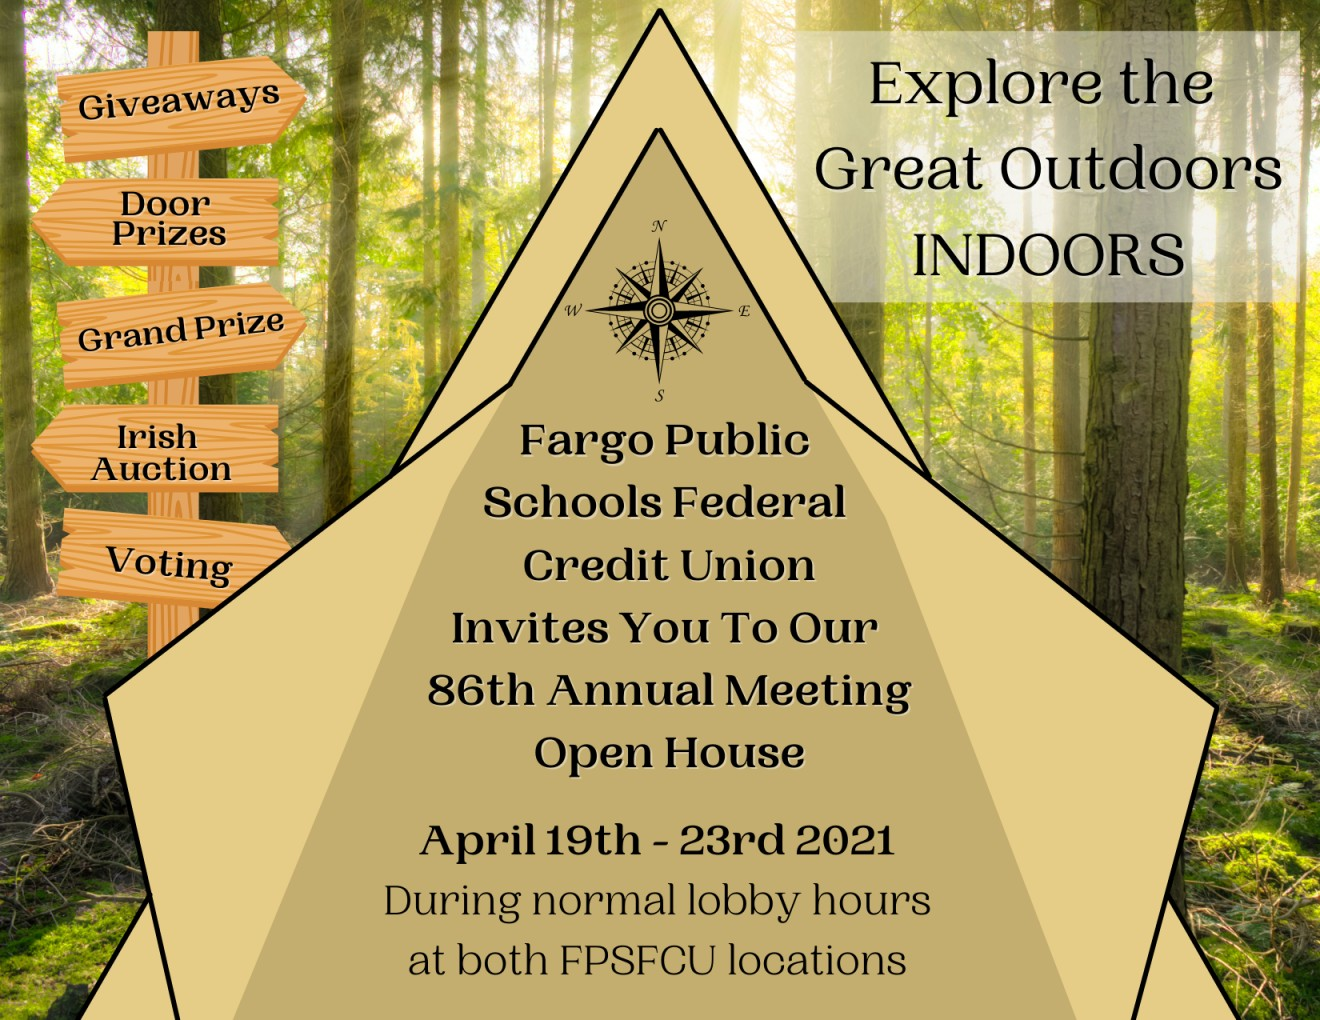 Tent in the woods with open doors, inside: Fargo Public Schools Federal Credit Union Invites you to our 86th Annual meeting open house. April 19th-23rd 2021 during normal lobby hours at both FPSFCU locations. Explore the great outdoors indoors! Post with the following signs on it: giveaways, door prizes, grand prize, irish auction, voting